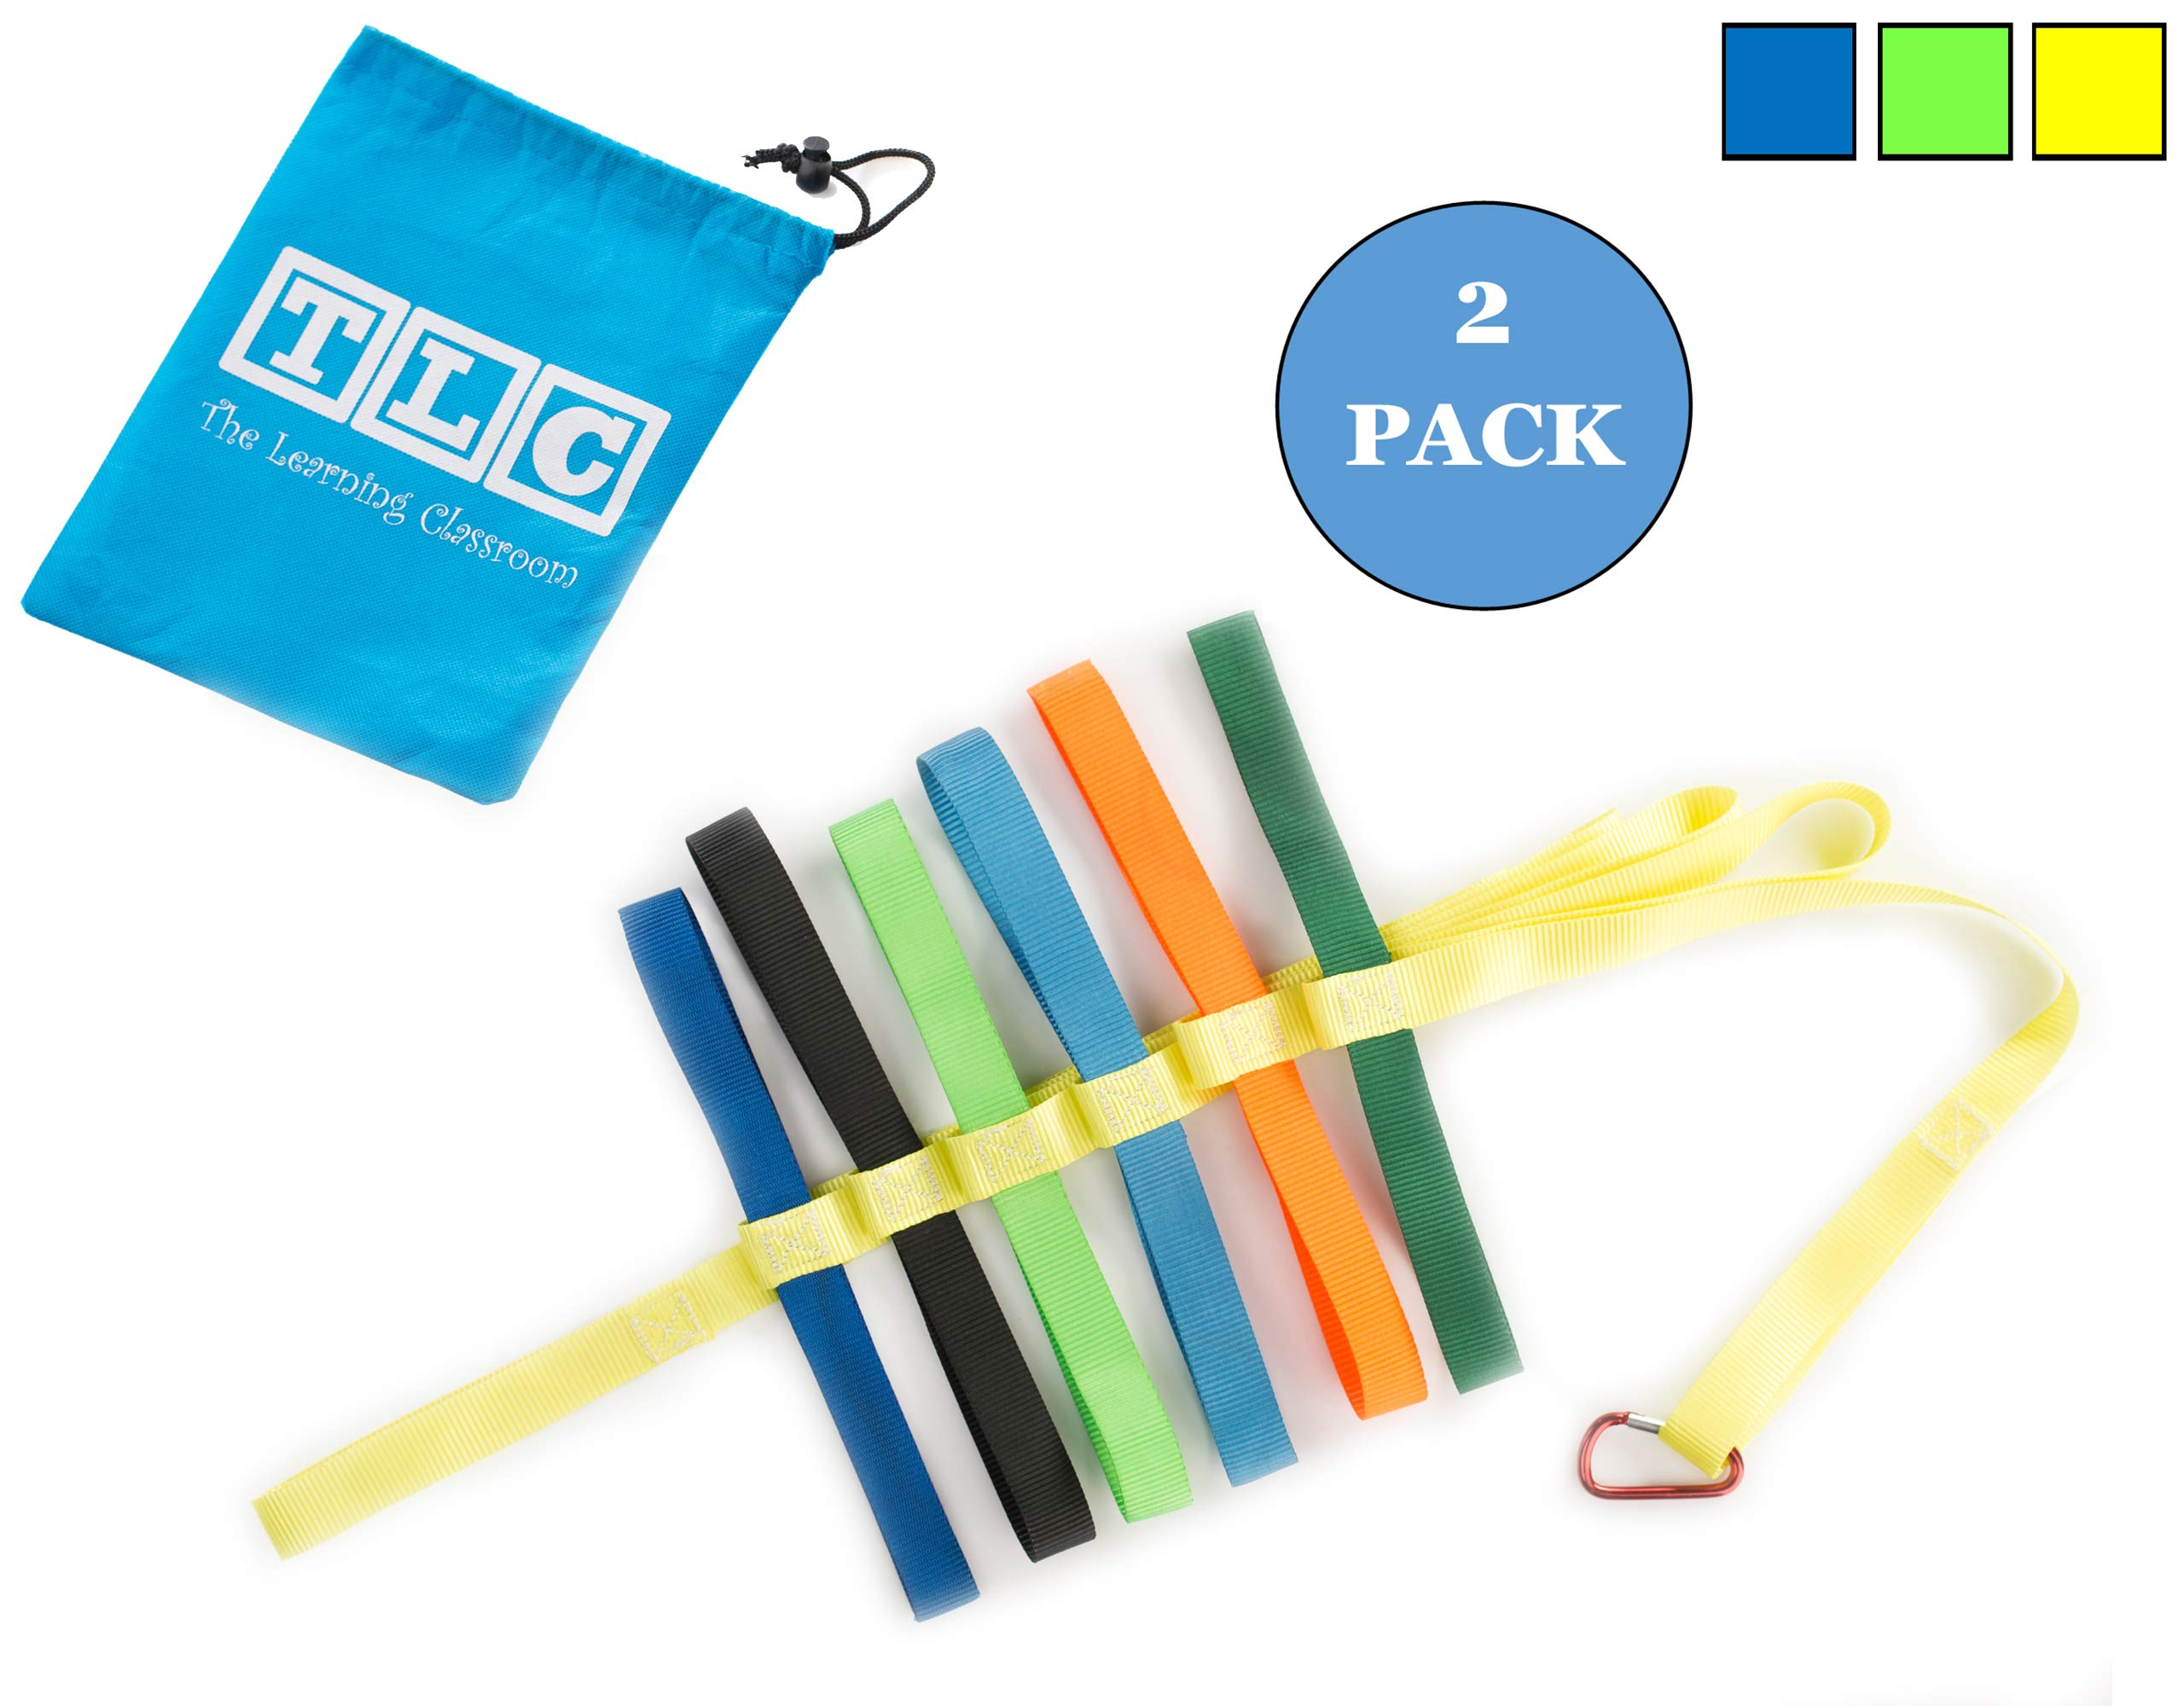 The Learning Classroom Preschool Walking Rope, Carry Bag, 12-Colorful Handles, Blue/Green/Yellow, 1-Pack or 2-Pack, Daycare, Toddler